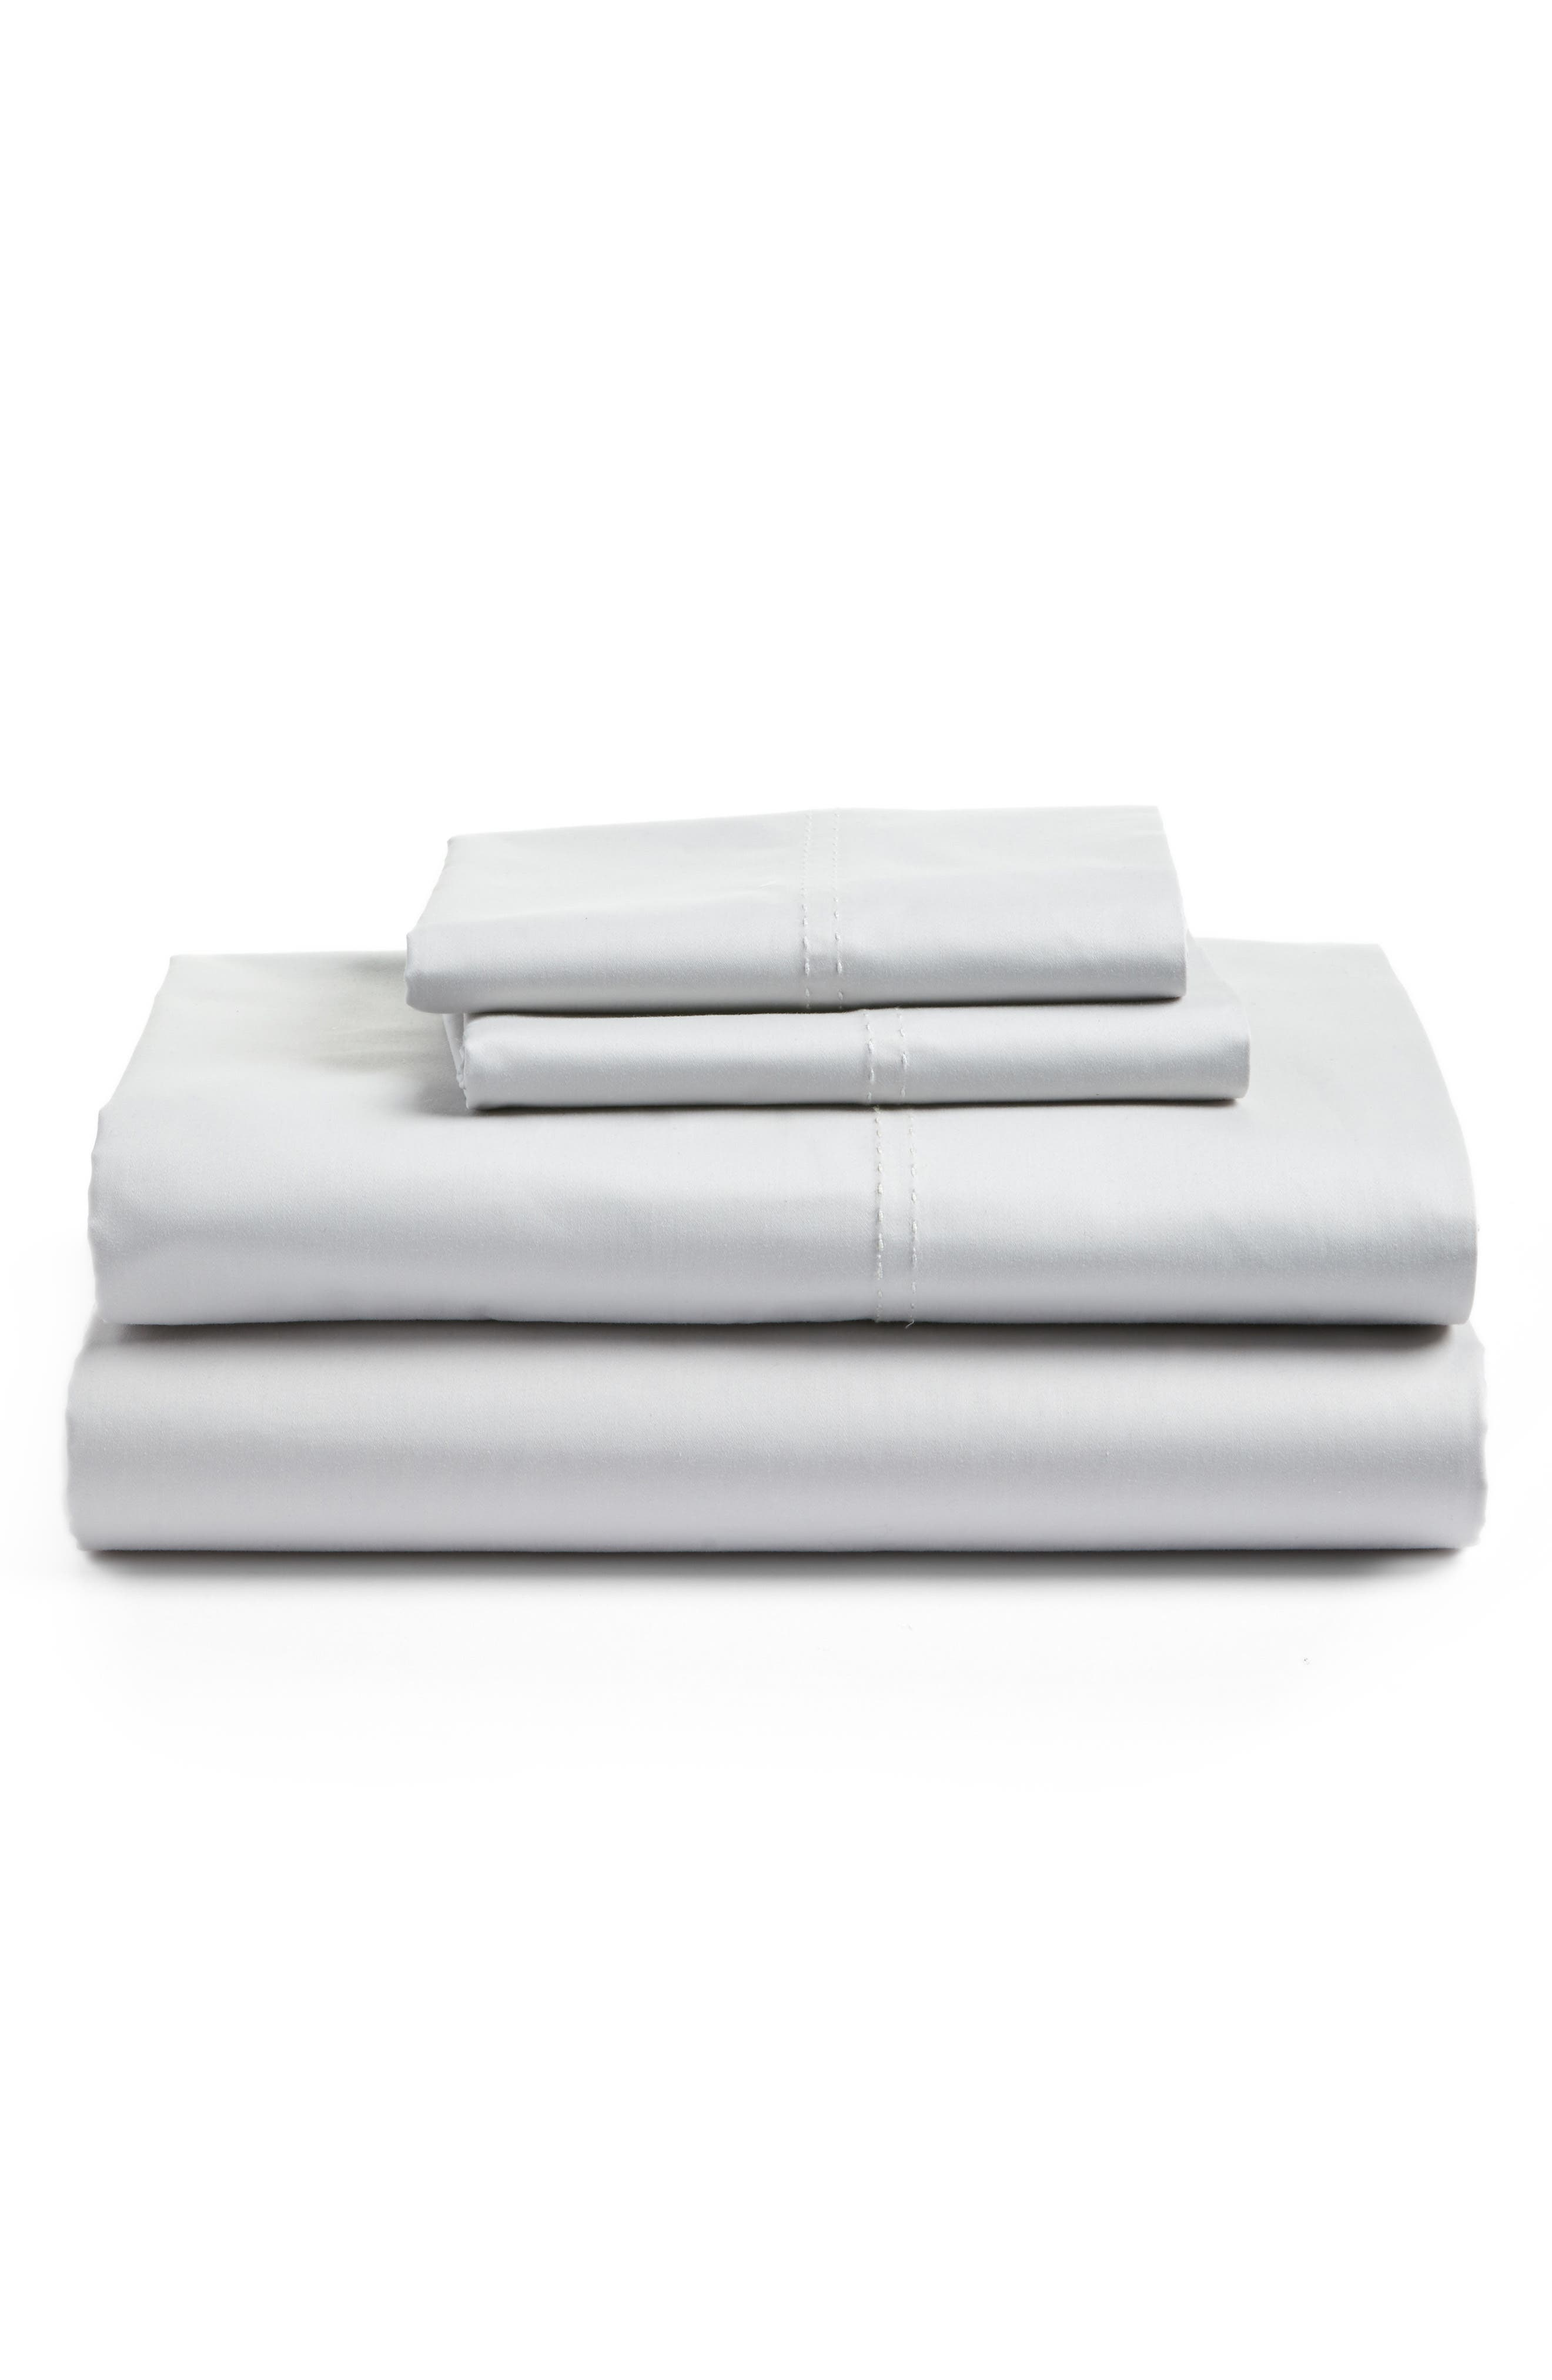 Nordstrom at Home 400 Thread Count Organic Cotton Sateen Sheet Set